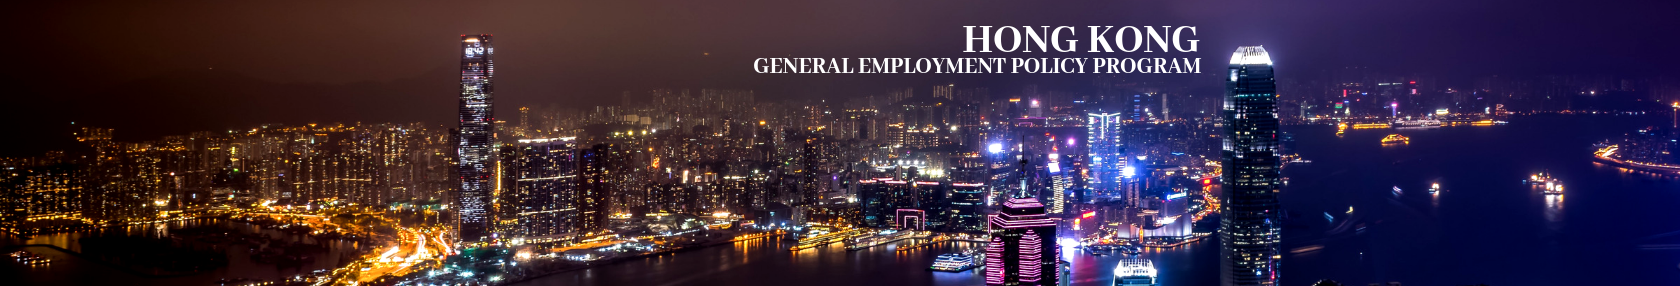 Hong Kong, General Employment Policy